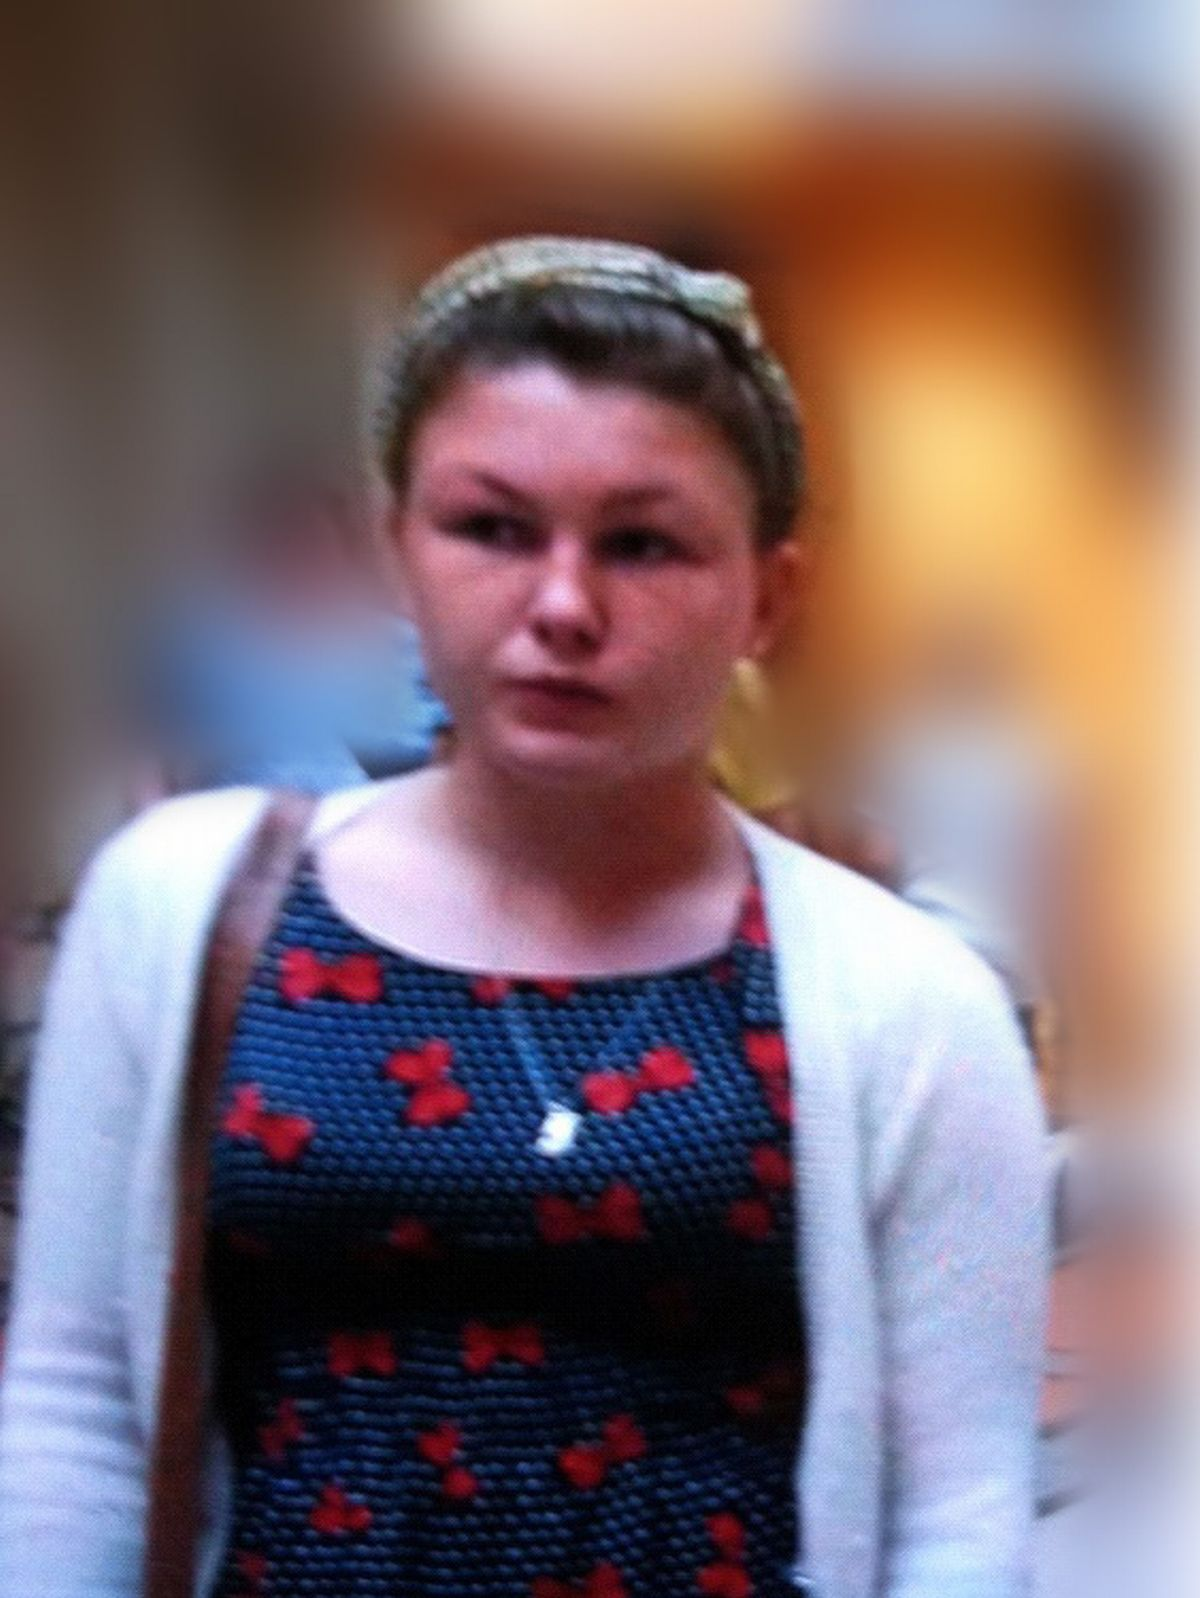 Help needed to trace missing 14-year-old from Torquay